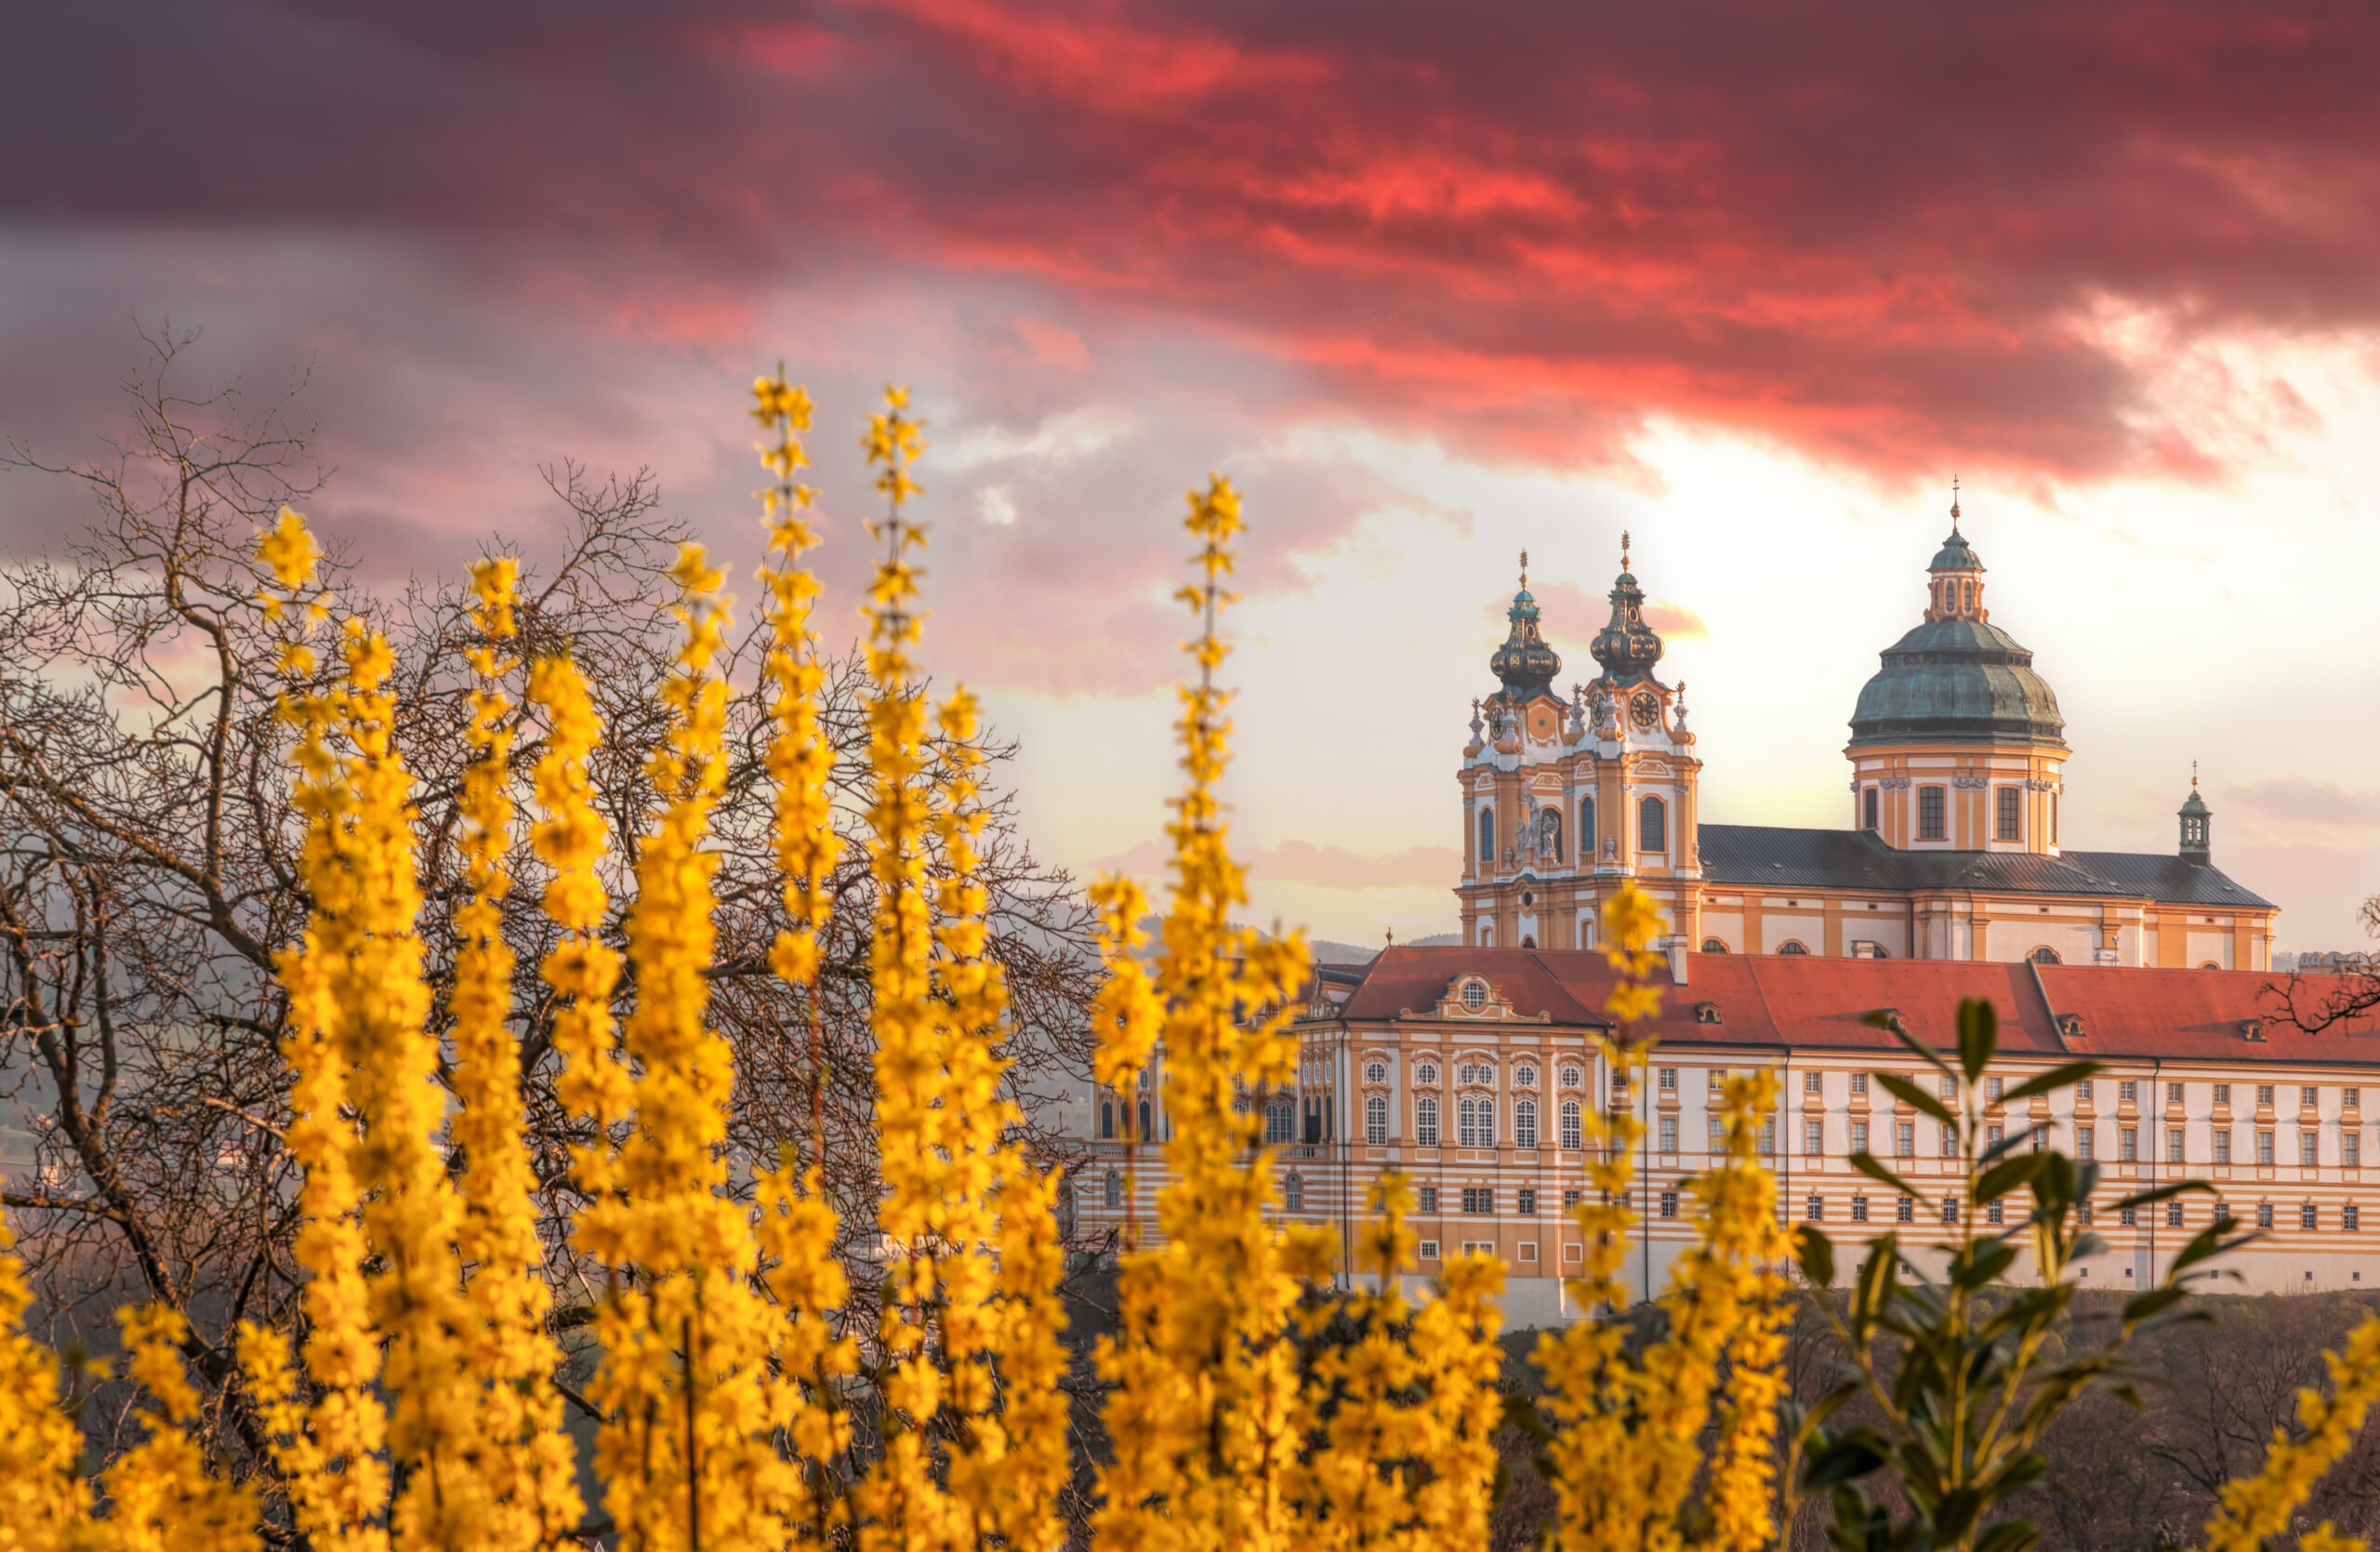 Photo of Melk Abbey in Austria. The elaborate and elegant Melk Abbey is featured on the right with dusty pink clouds in the sky. Stunning golden yellow flowers are situated in the foreground.